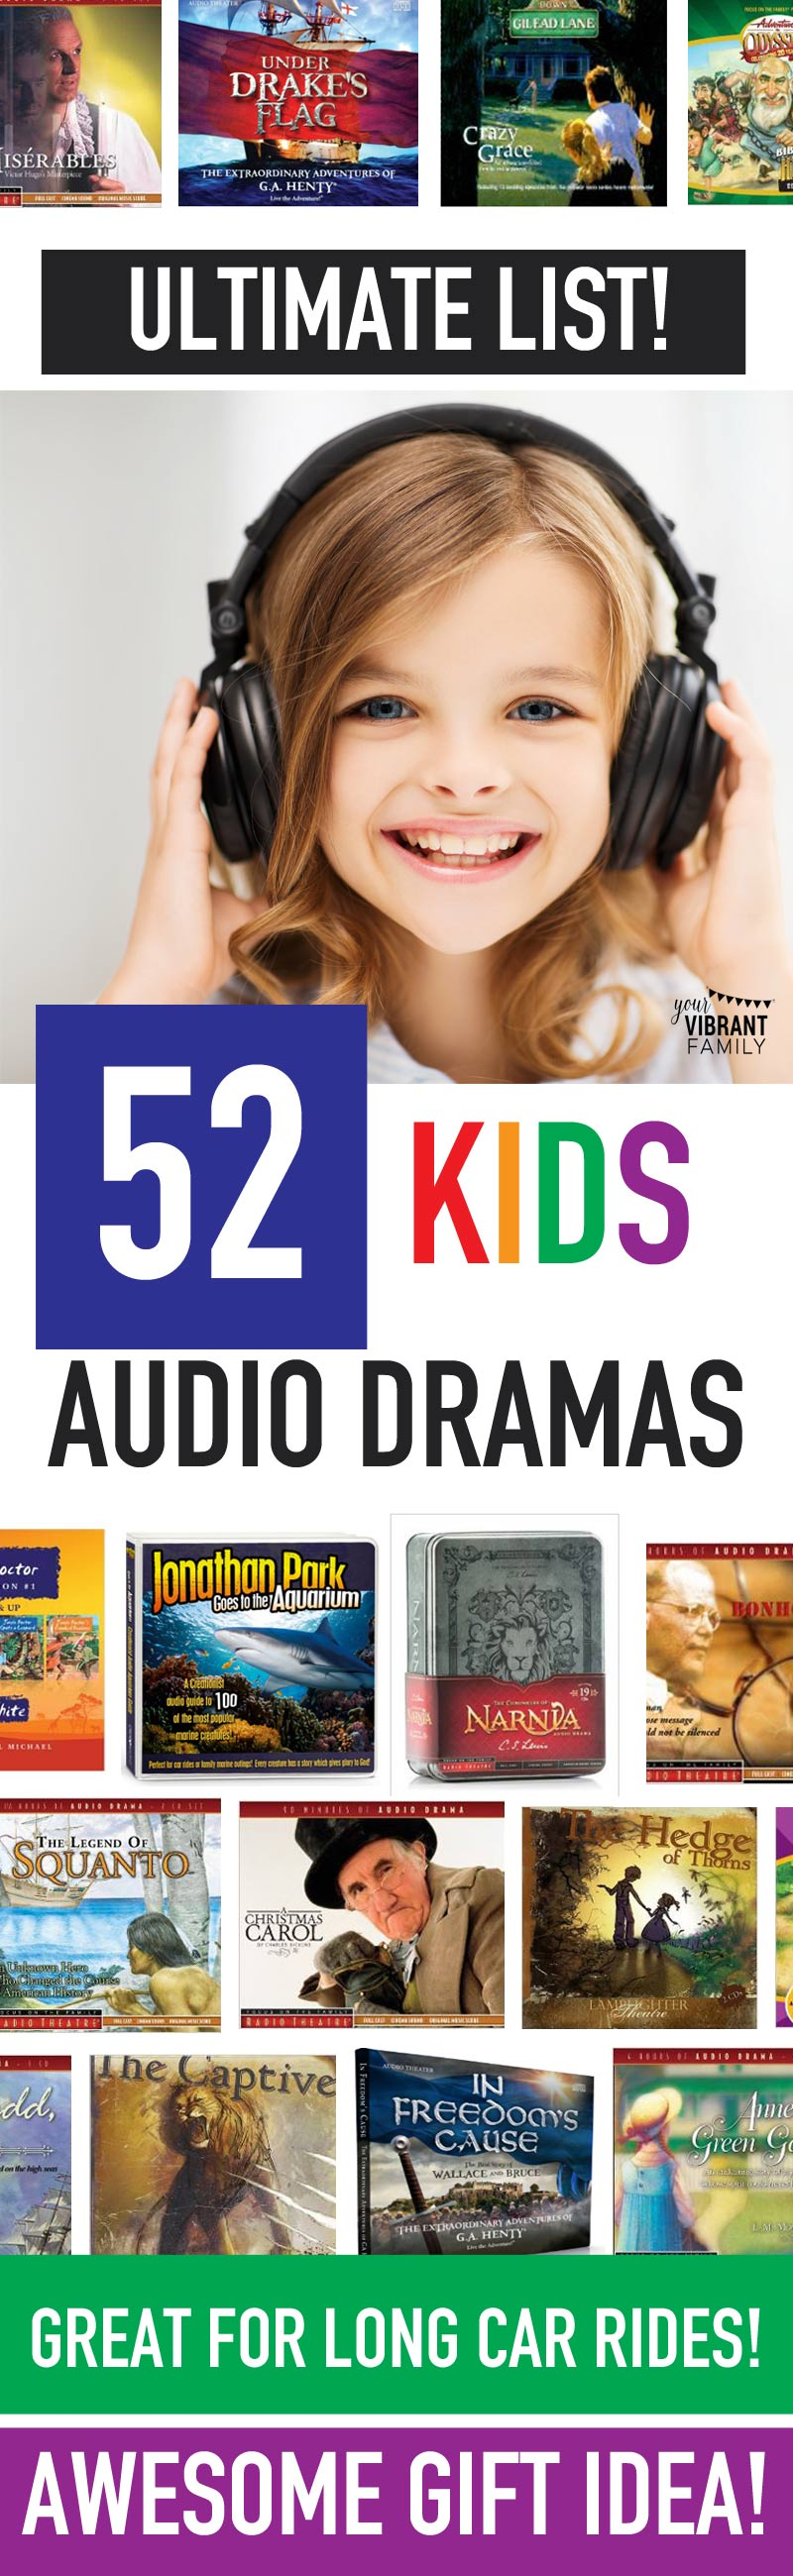 road trip activities for kids | christian audio stories for kids | christian audio dramas for kids | kids audio dramas | kids audio books | audio books road trips